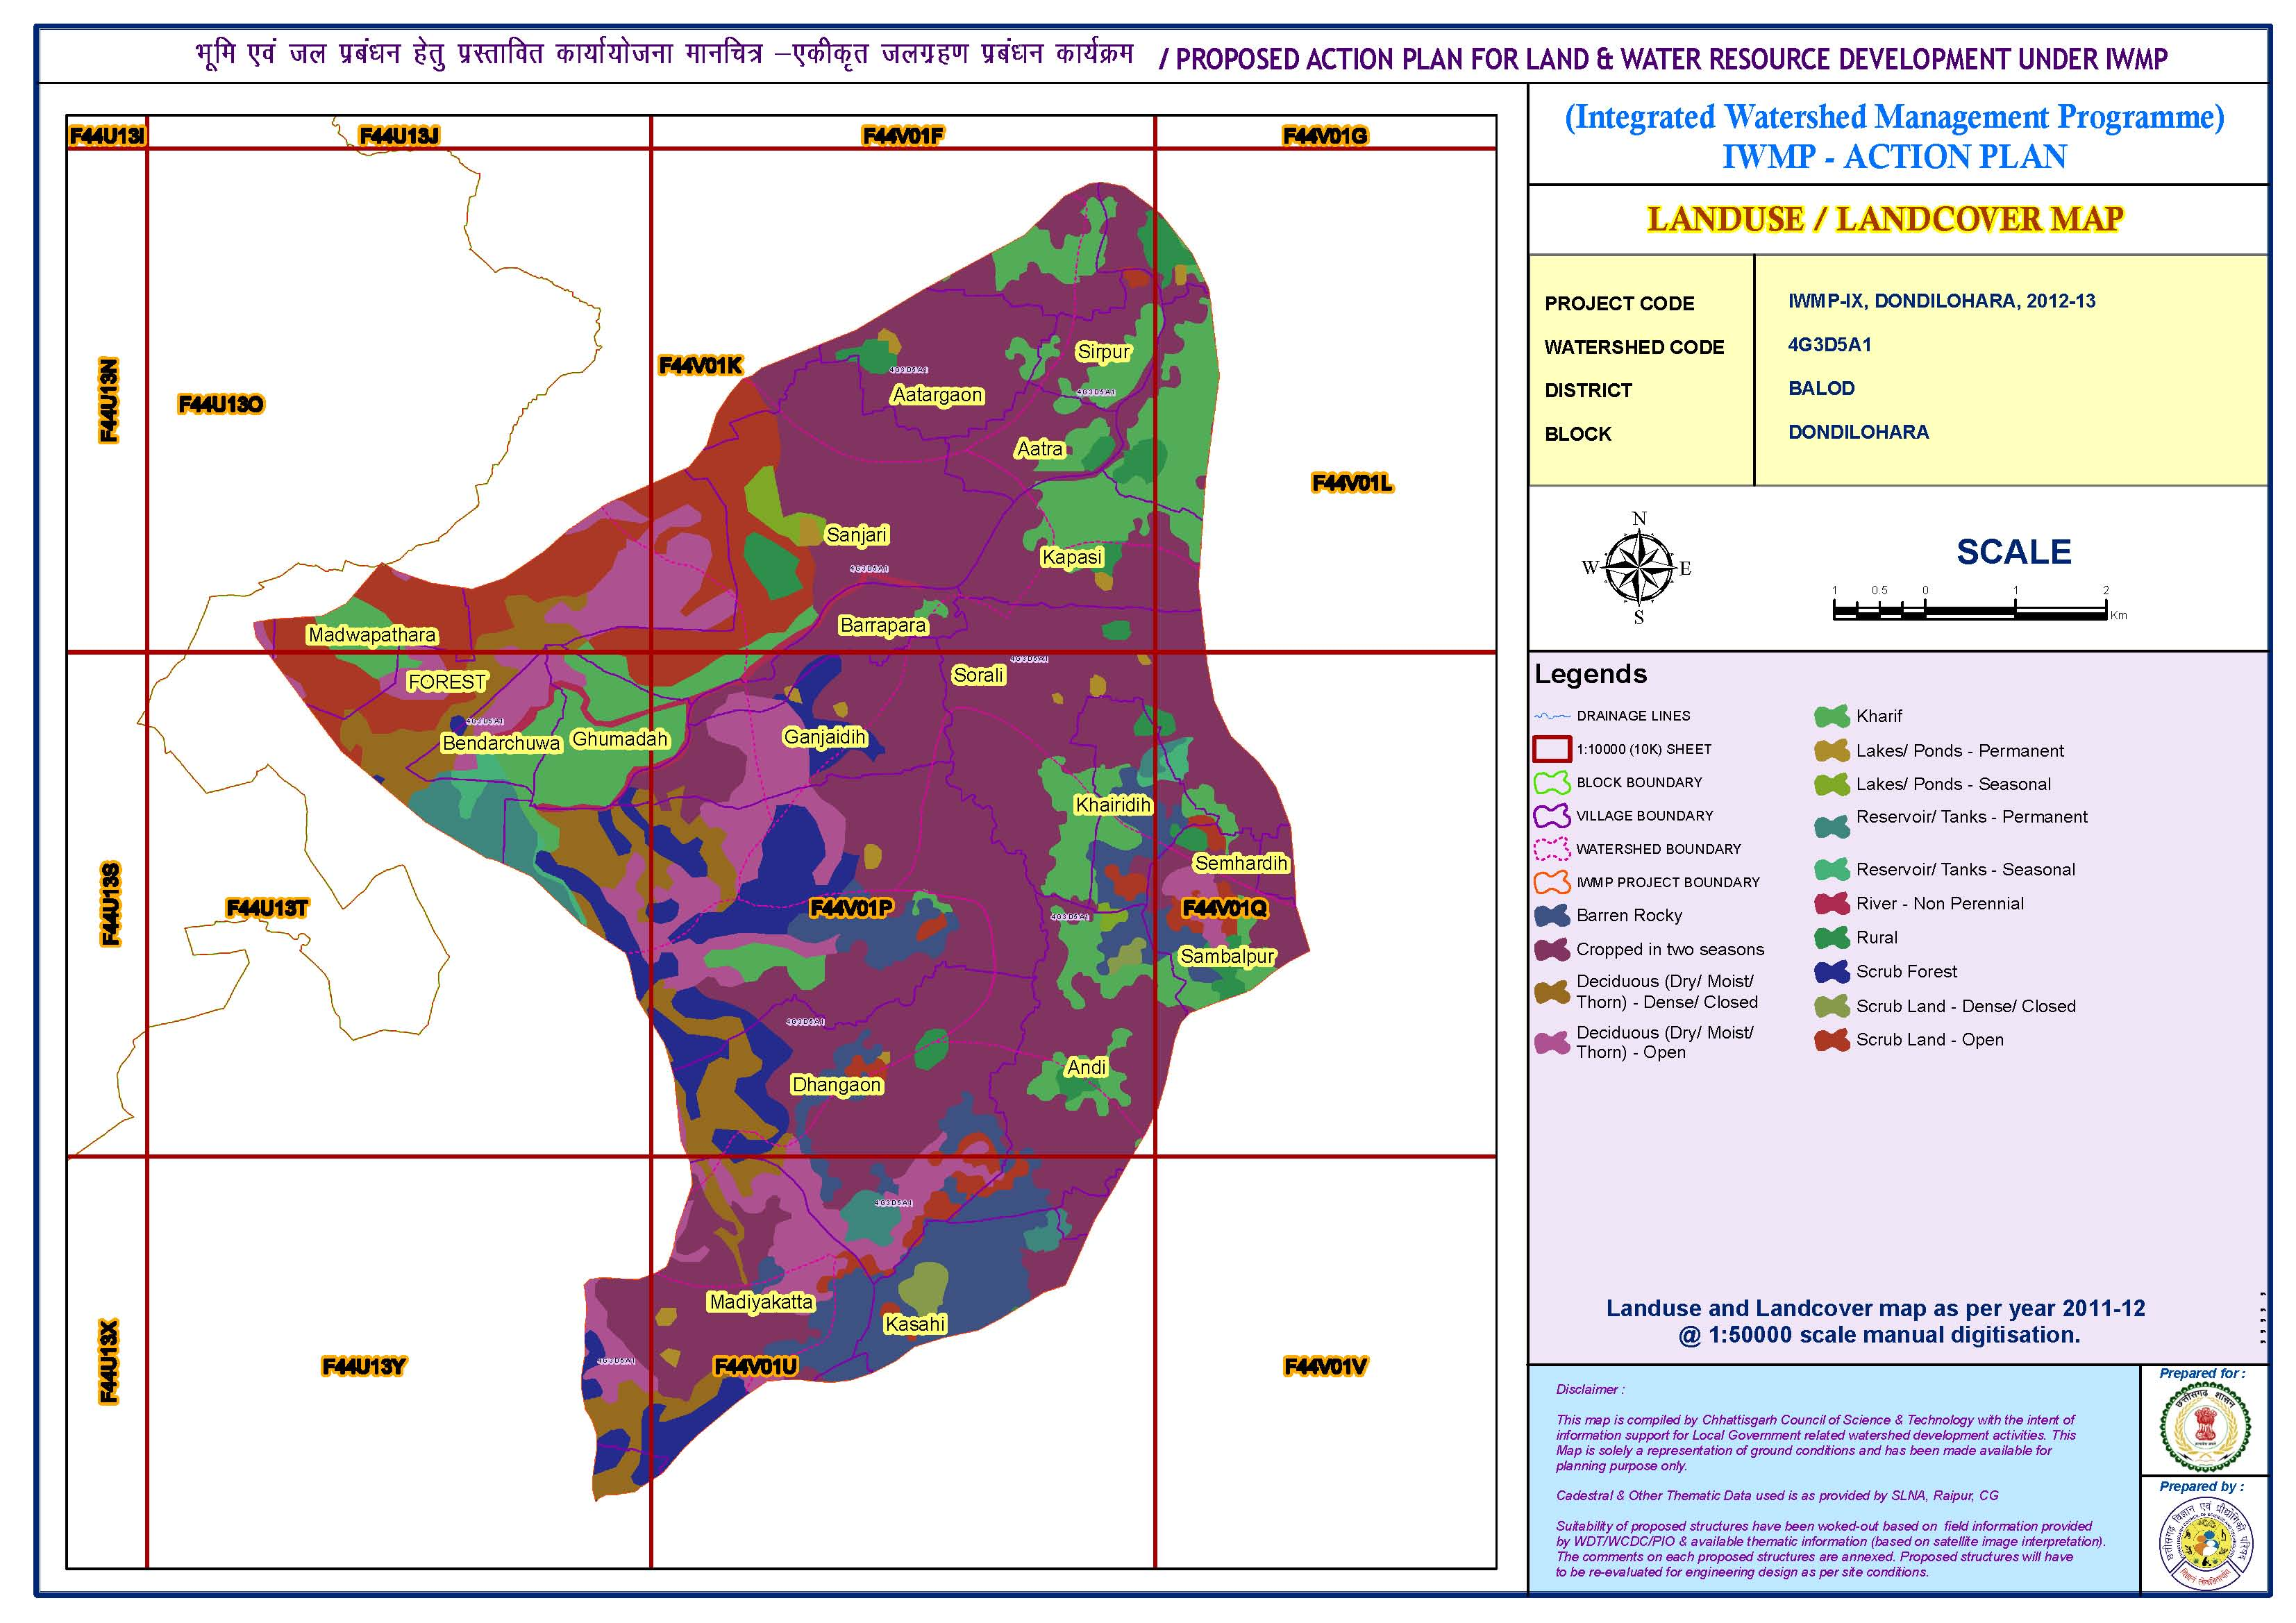 Integrated watershed management  (Landuse/landcover map)